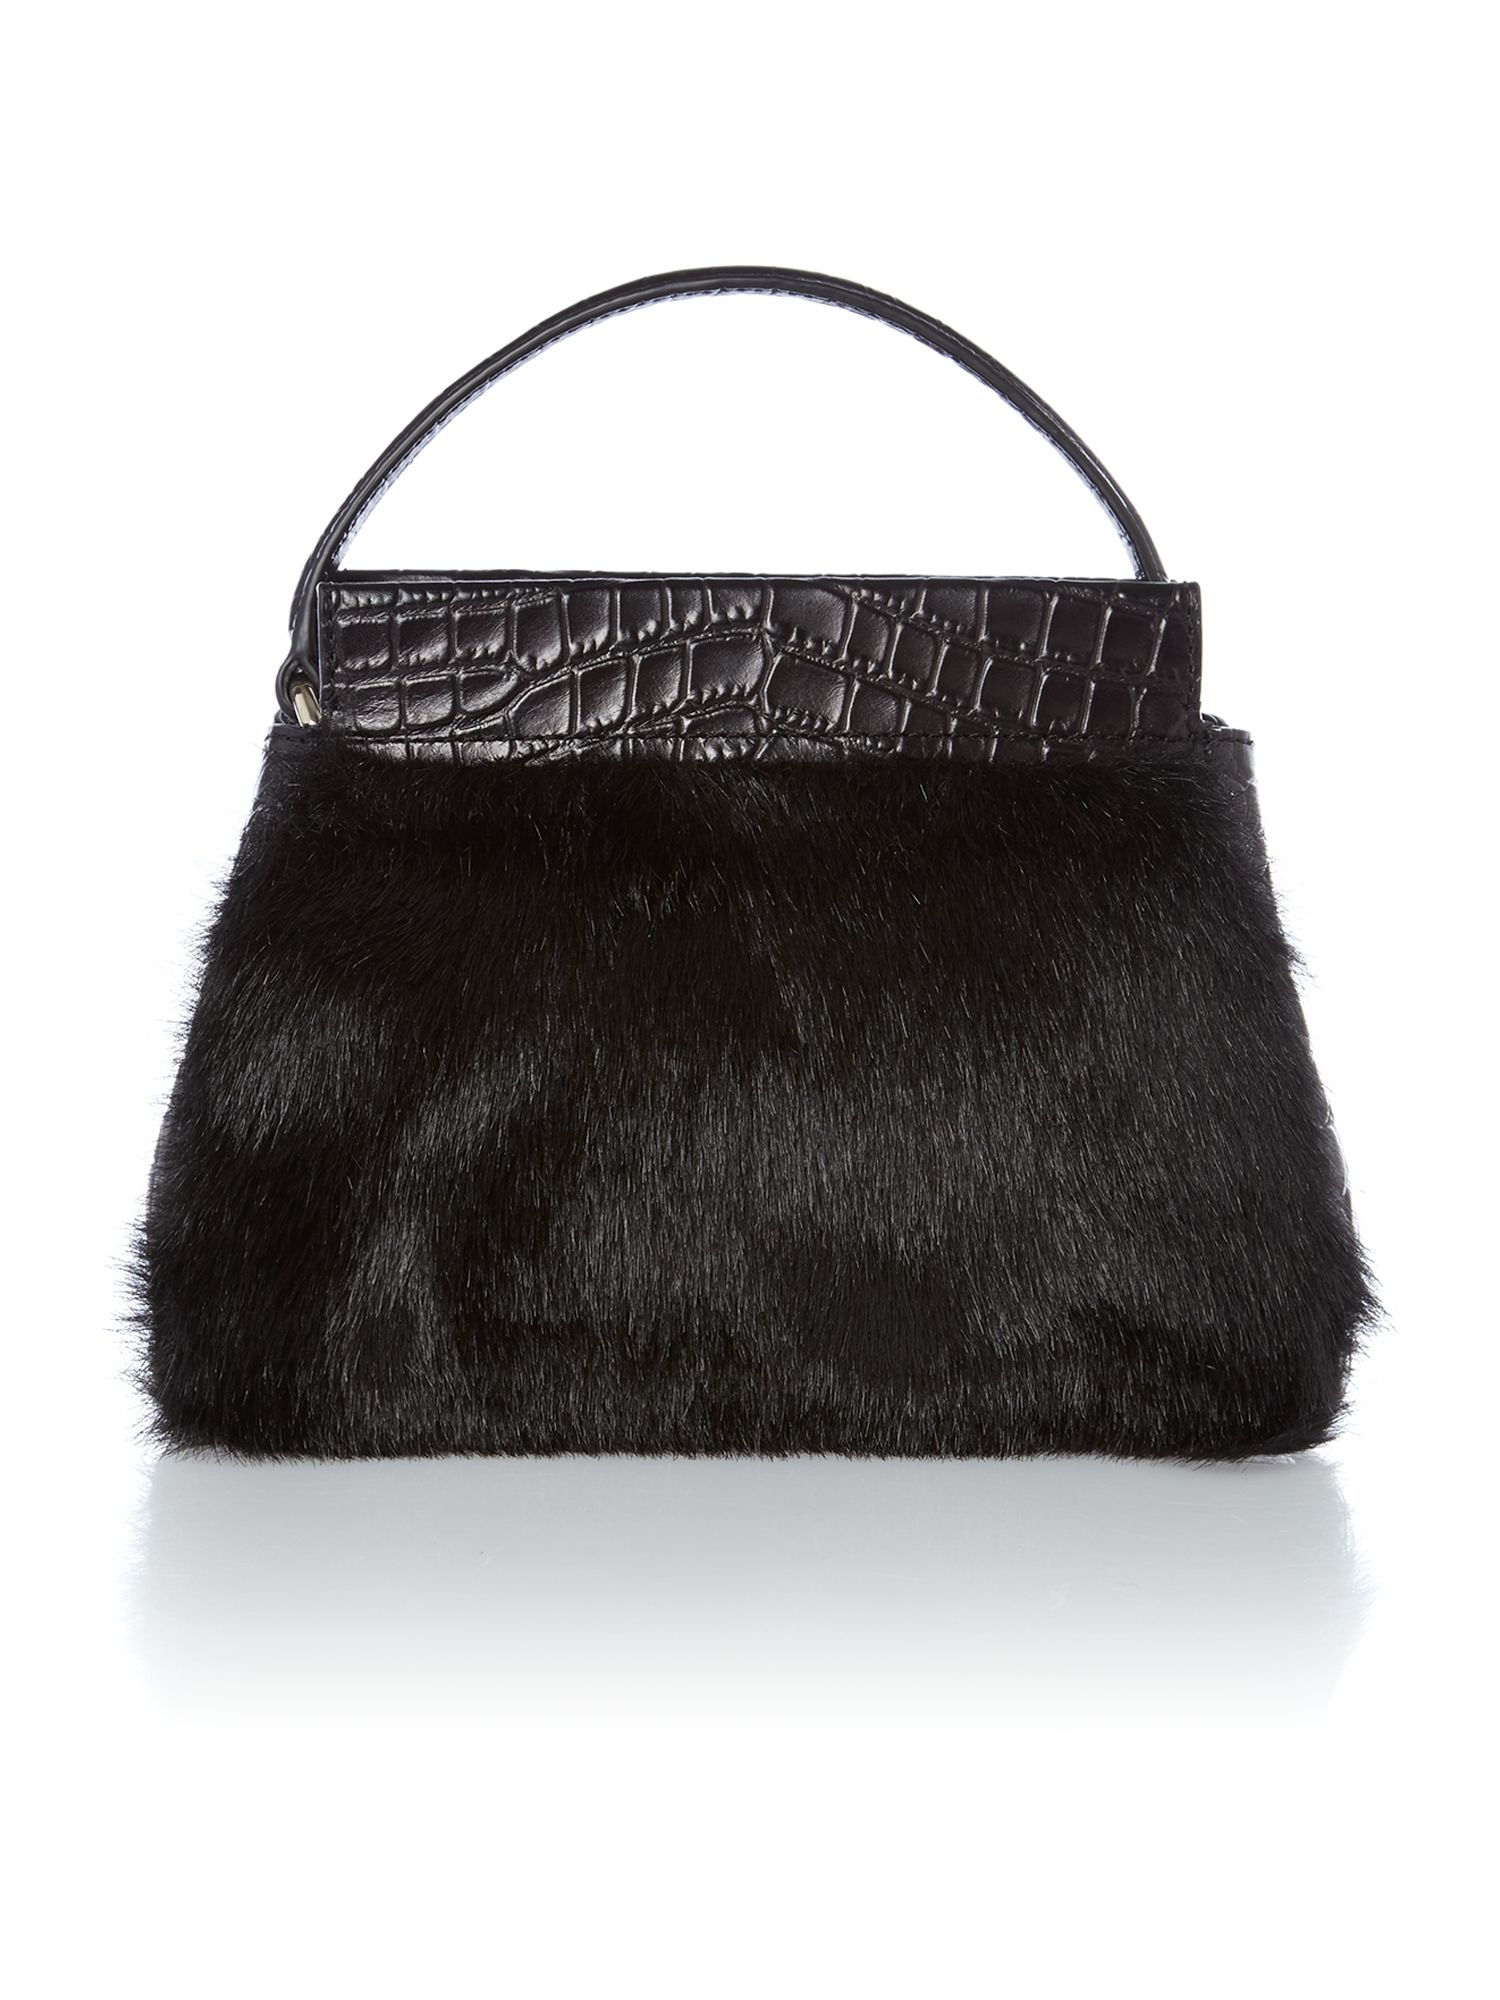 Gramercy black cross body with faux fur detail